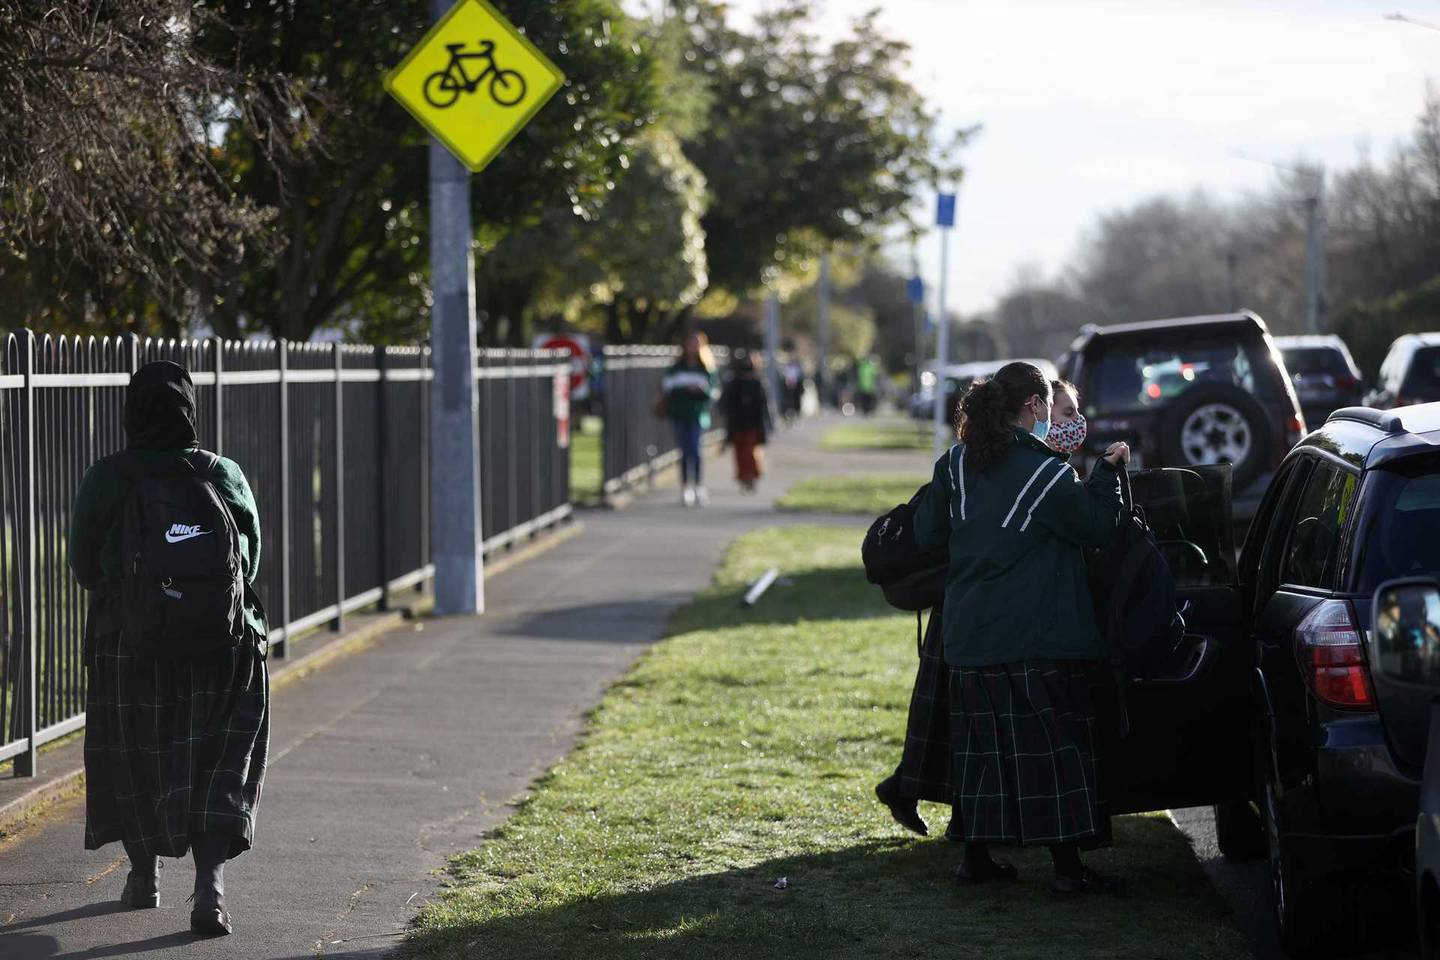 While home schooling and online learning continued for children in Auckland, students in Christchurch were able to get back to class. Photo / George Heard